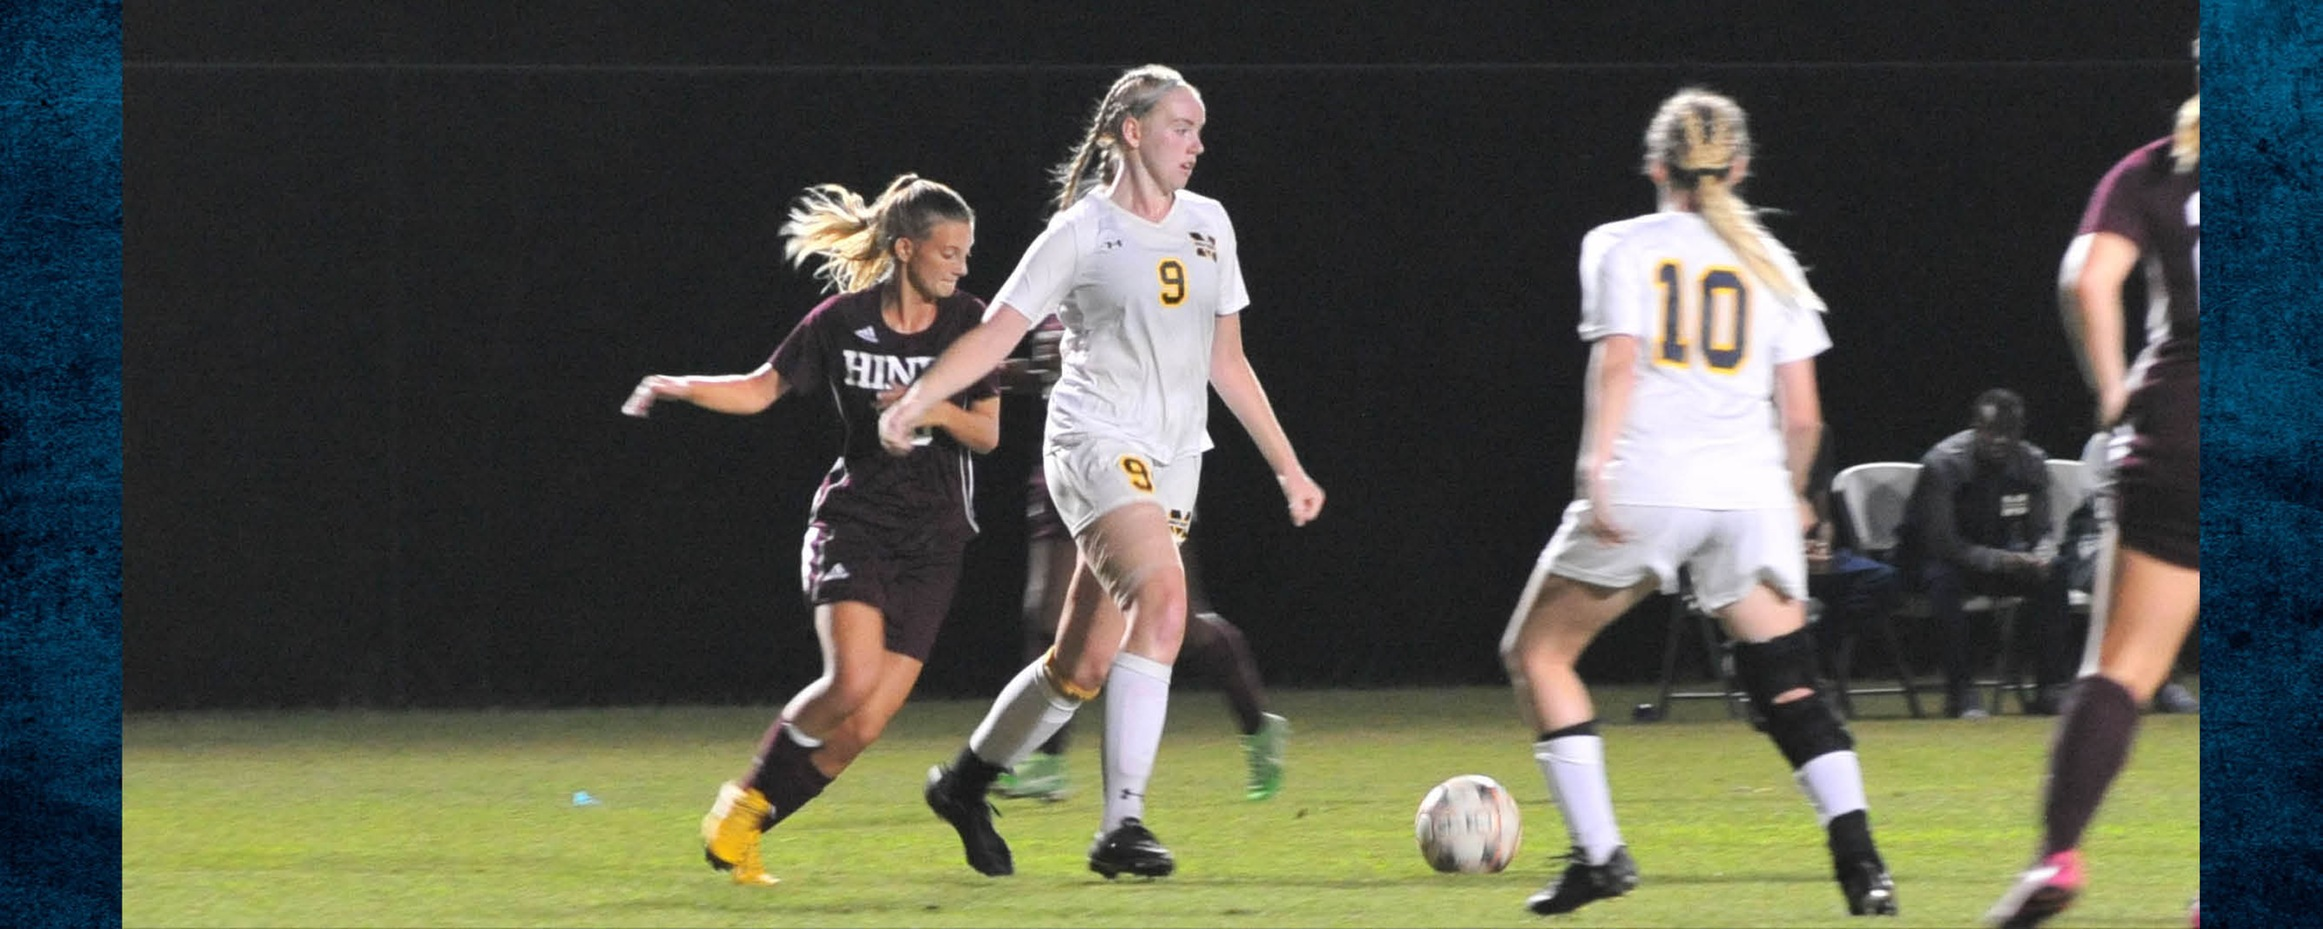 Gulf Coast ready for steep semifinal challenge